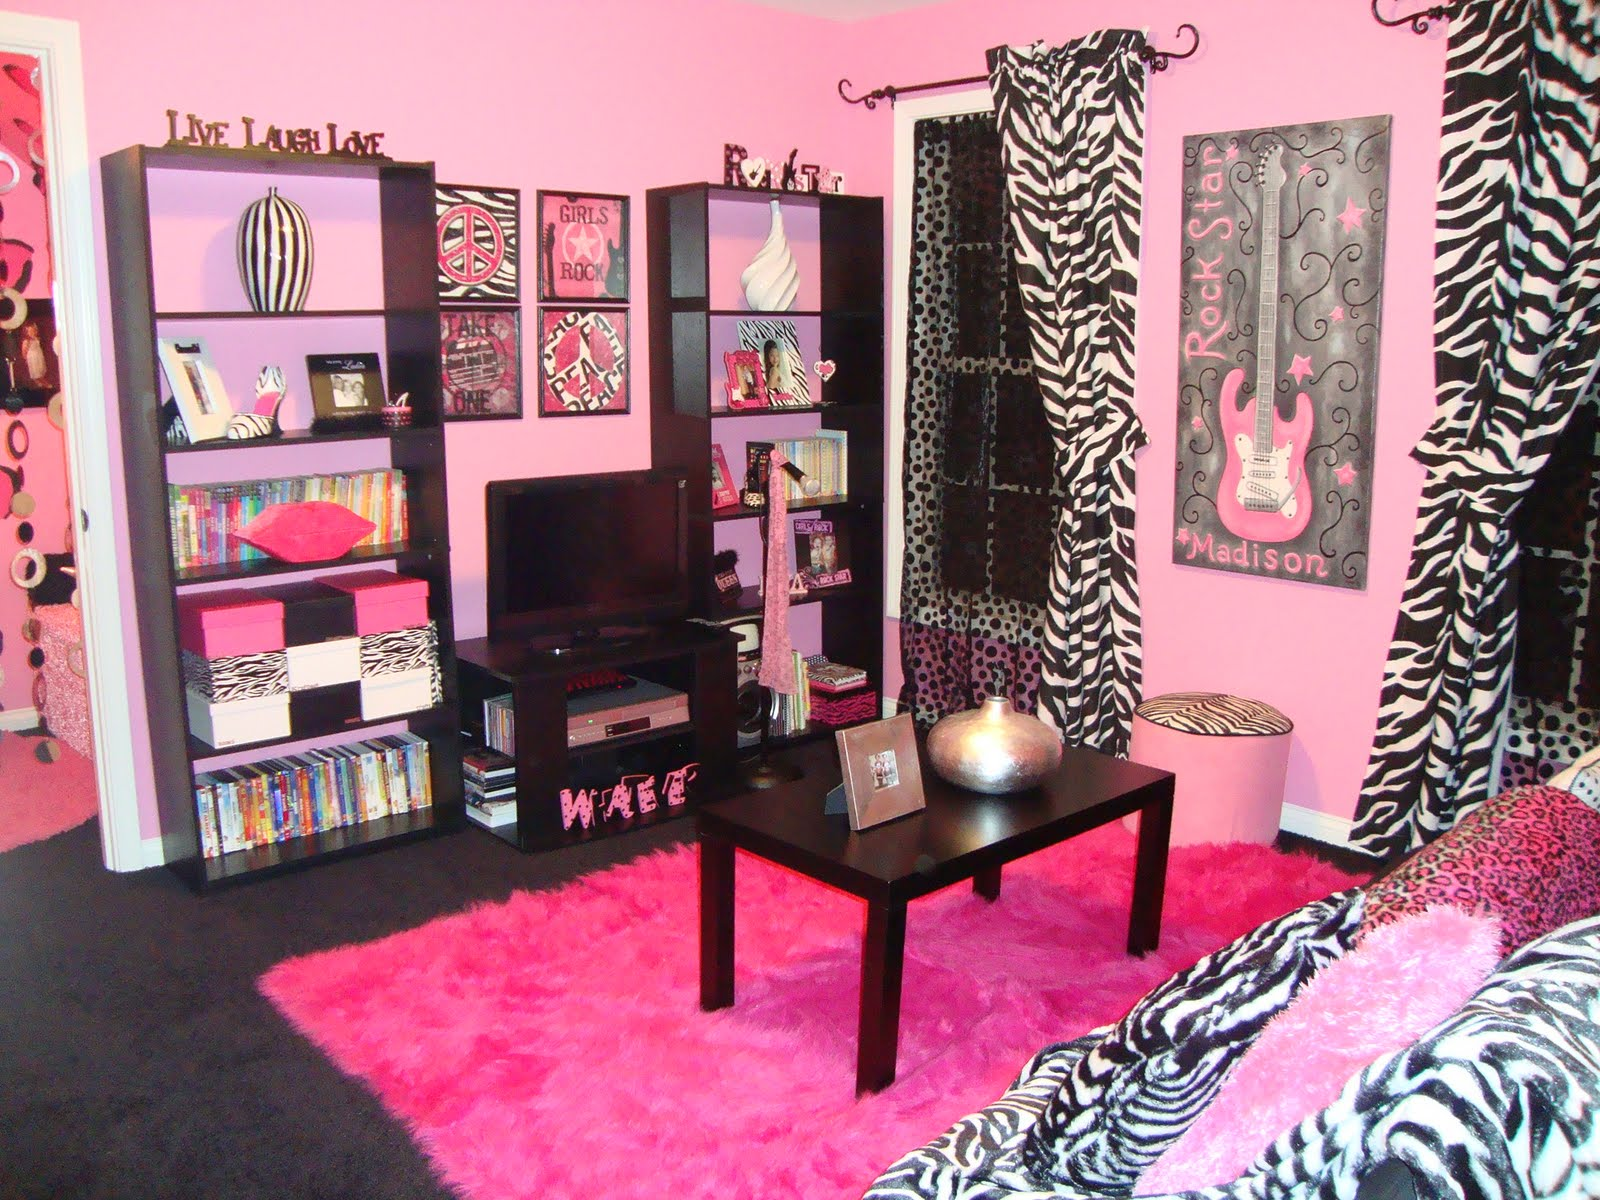 Aren't you loving the zebra print, guitar print, and all the girly things?